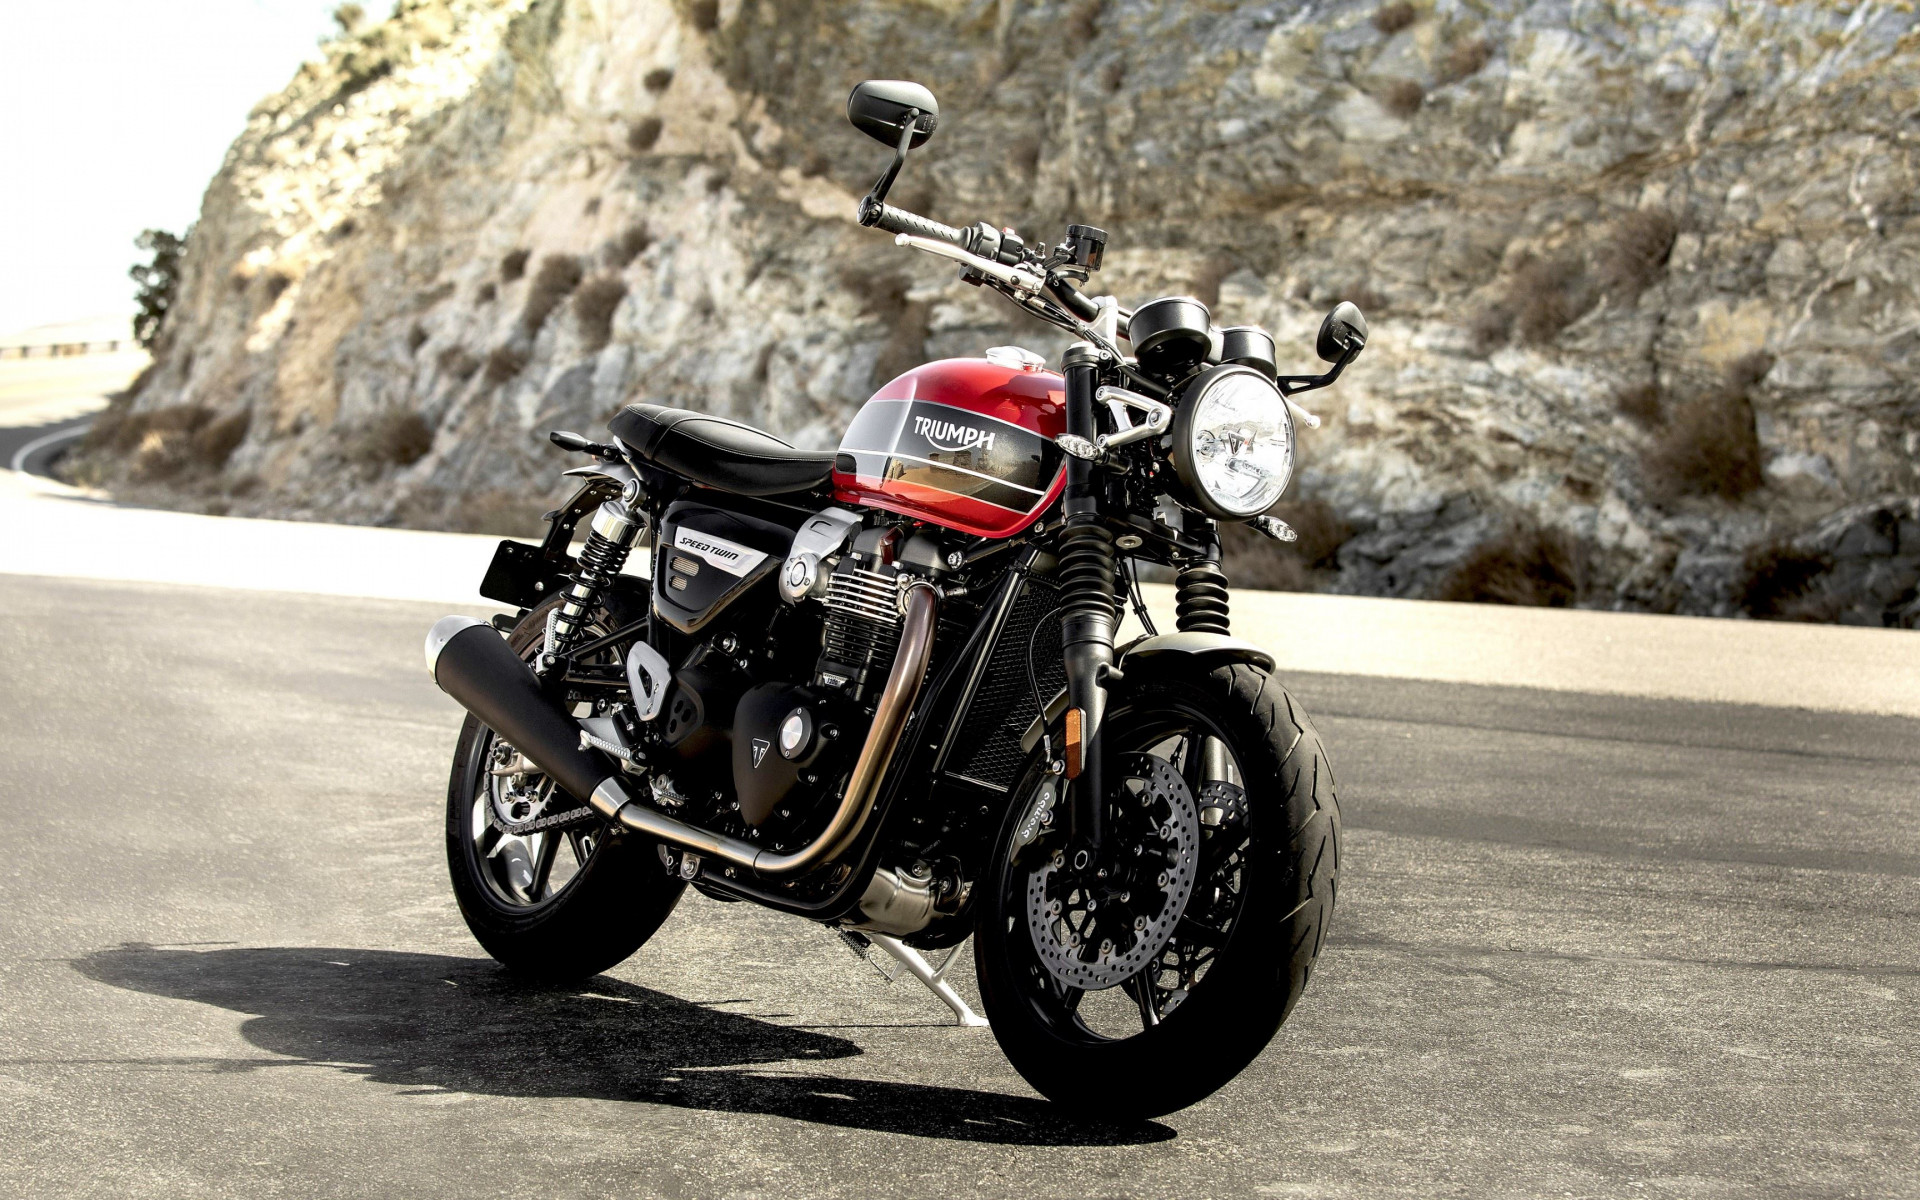 Triumph Speed Twin wallpaper 1920x1200